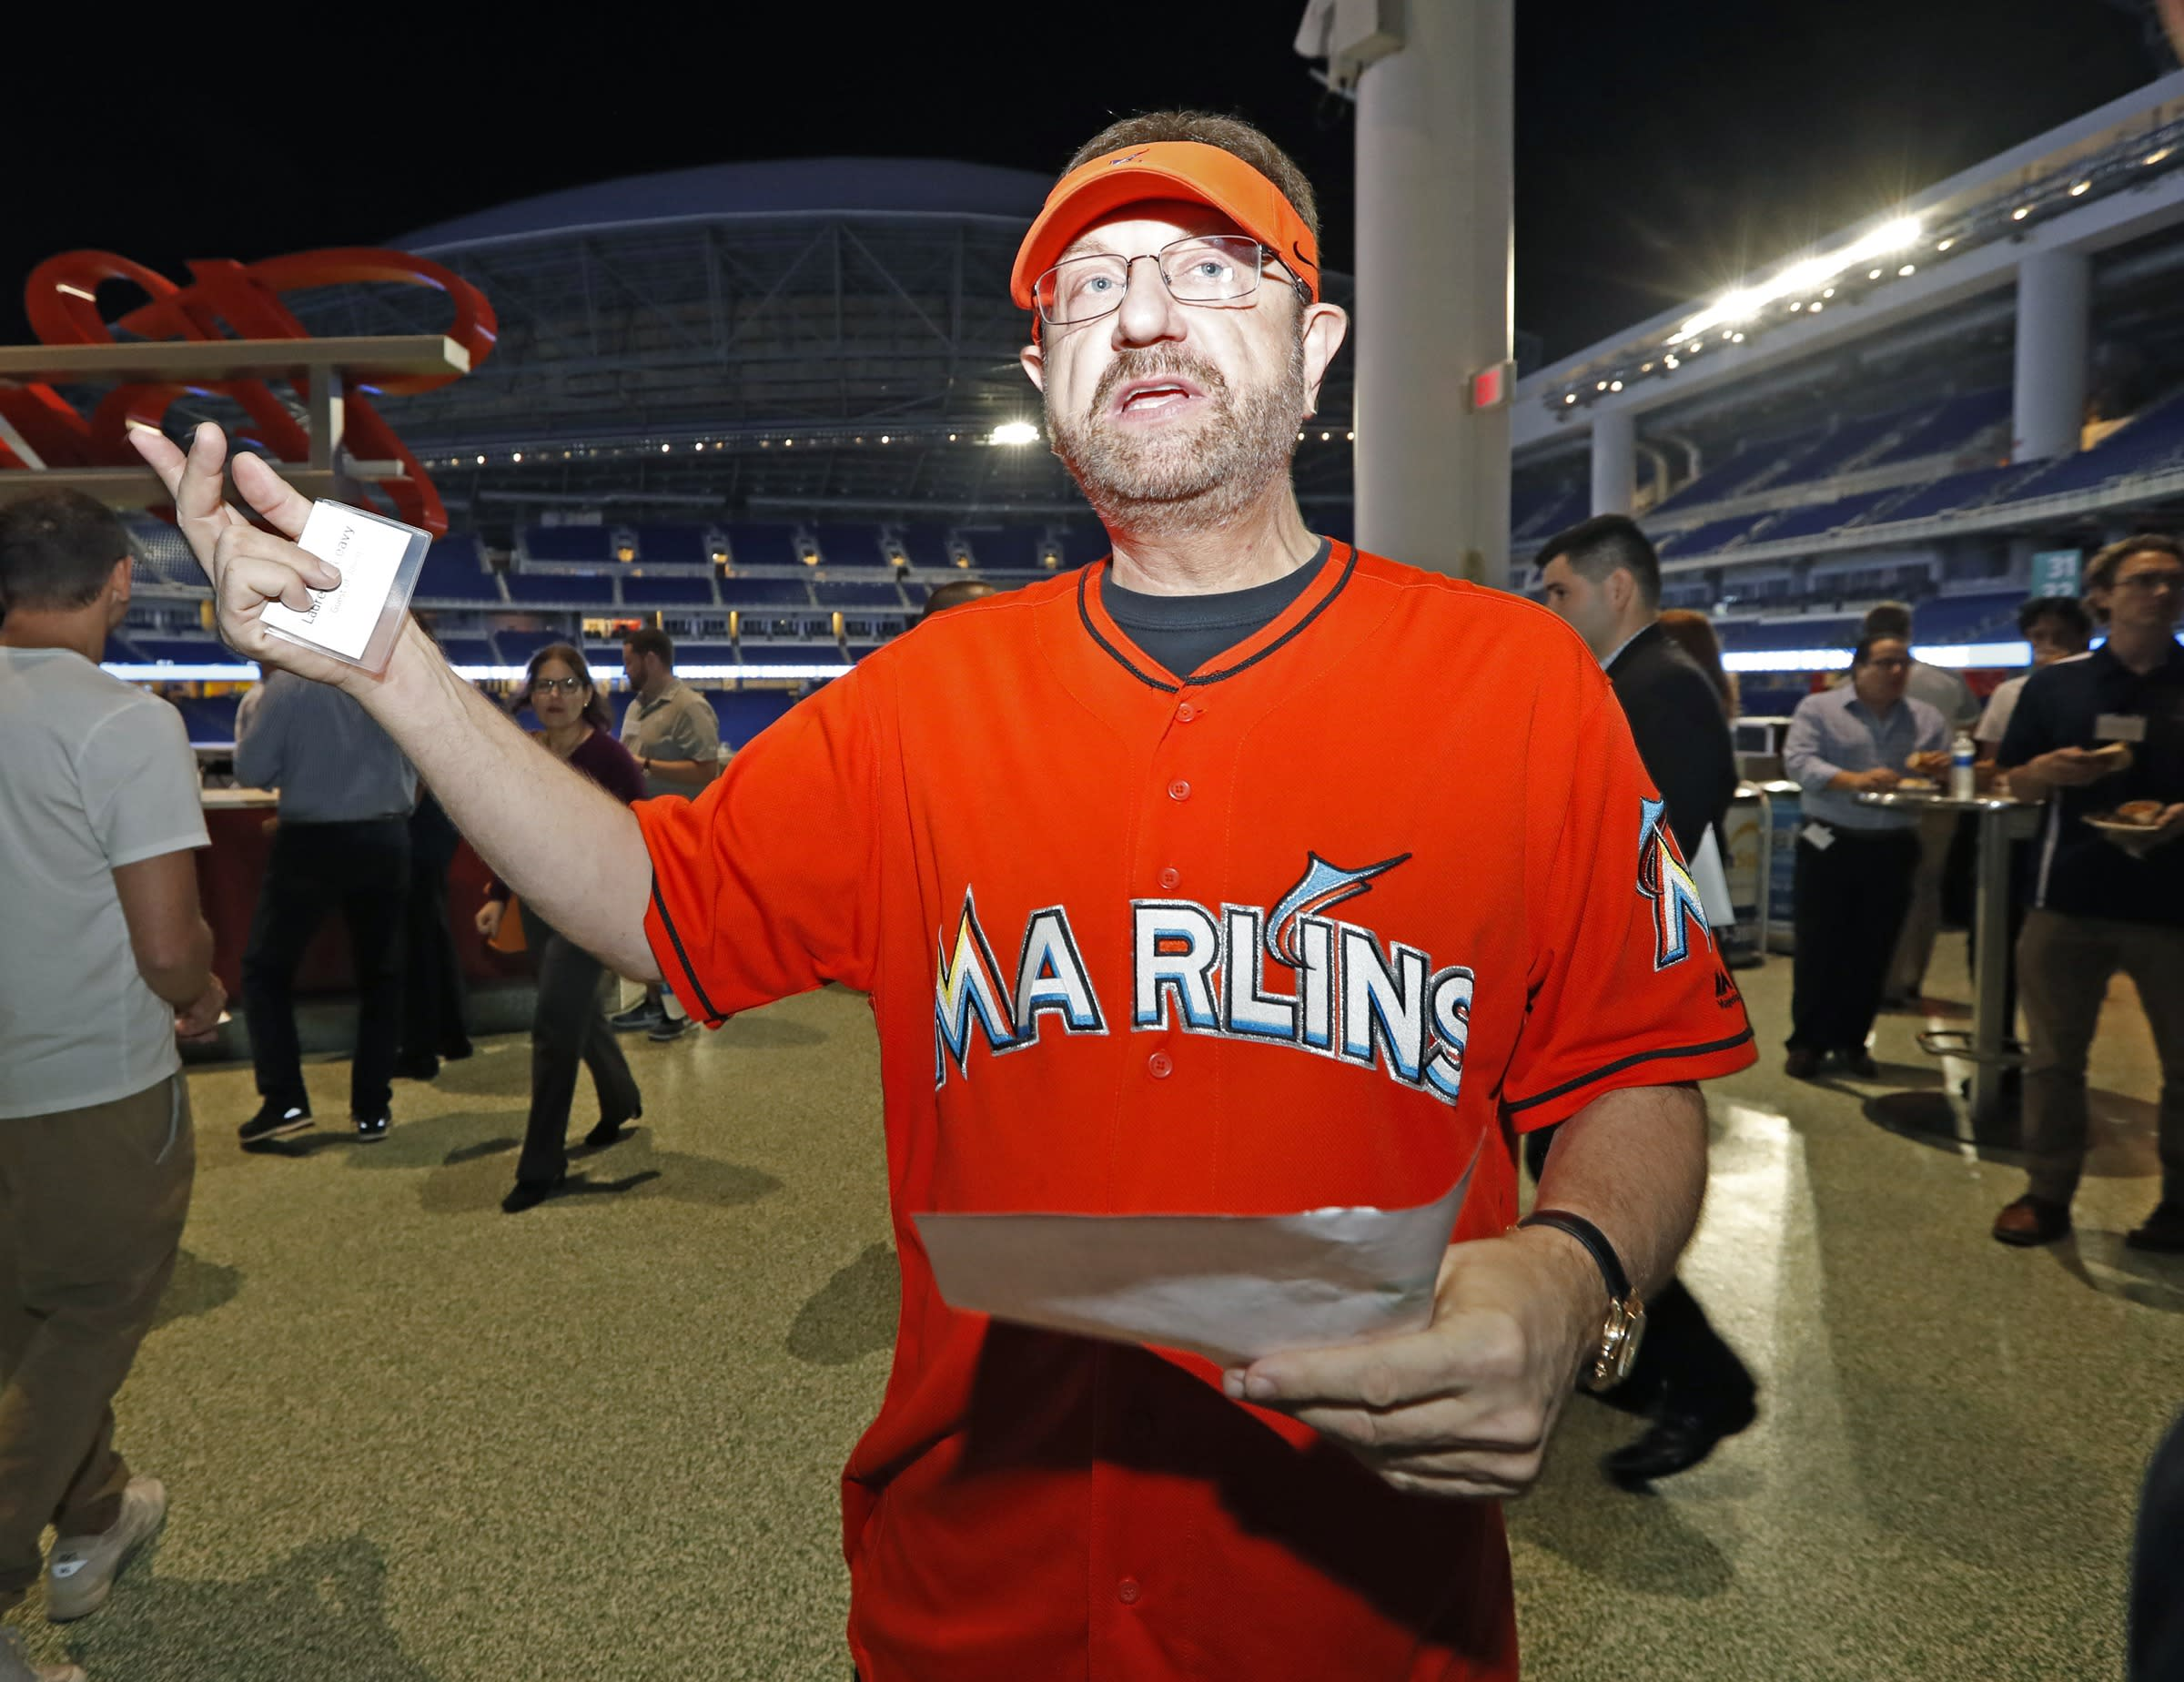 Marlins Man to sign one-day contract with Marlins despite feud with Derek Jeter